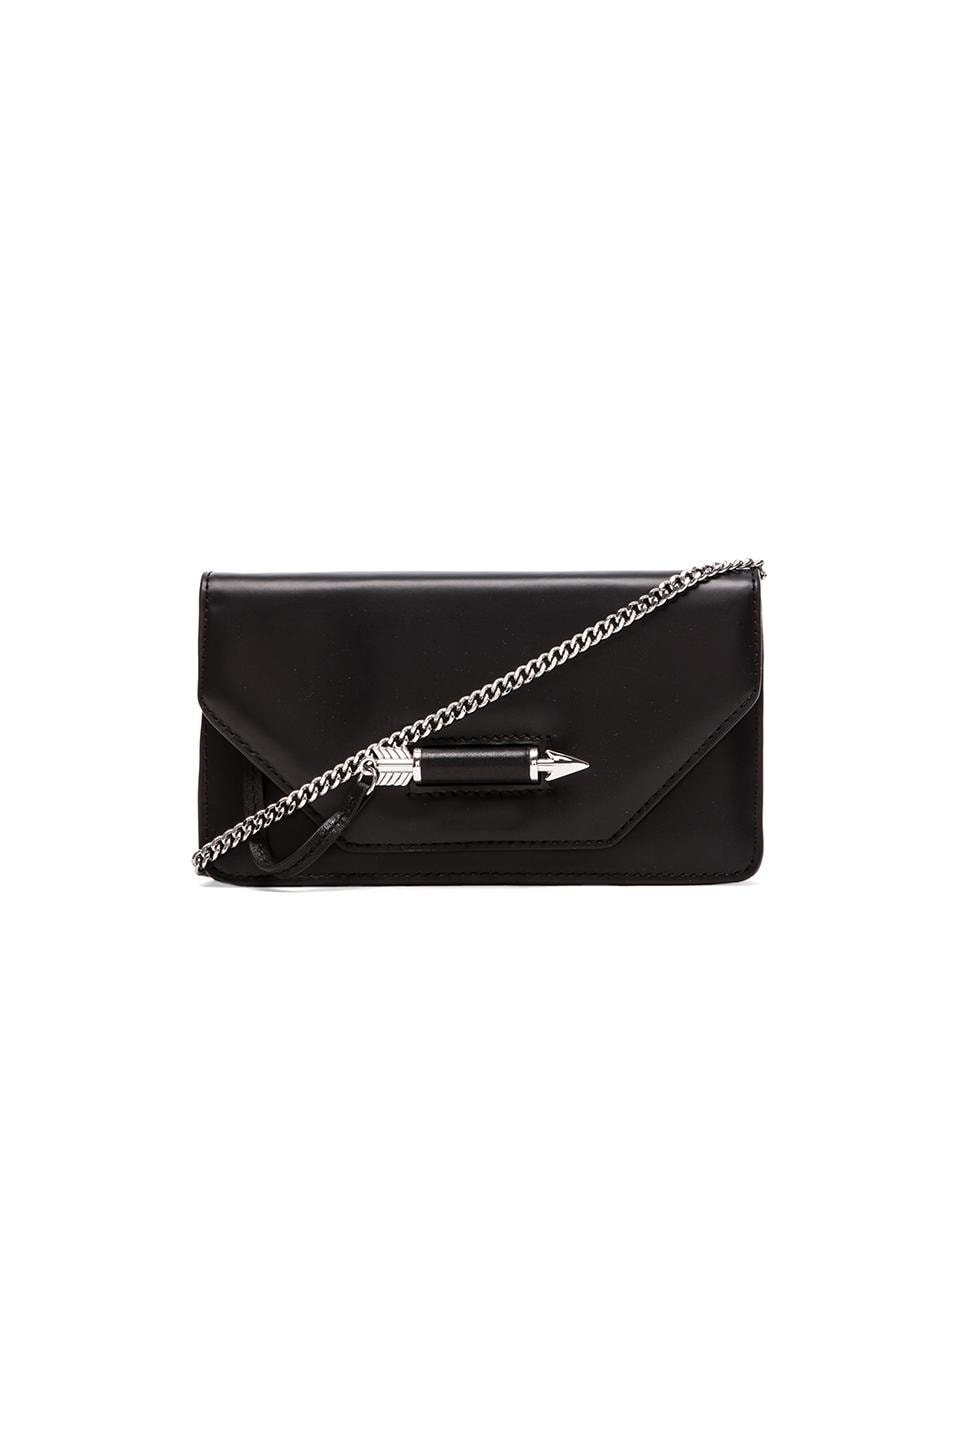 Mackage Zoey Mini Bag in Black